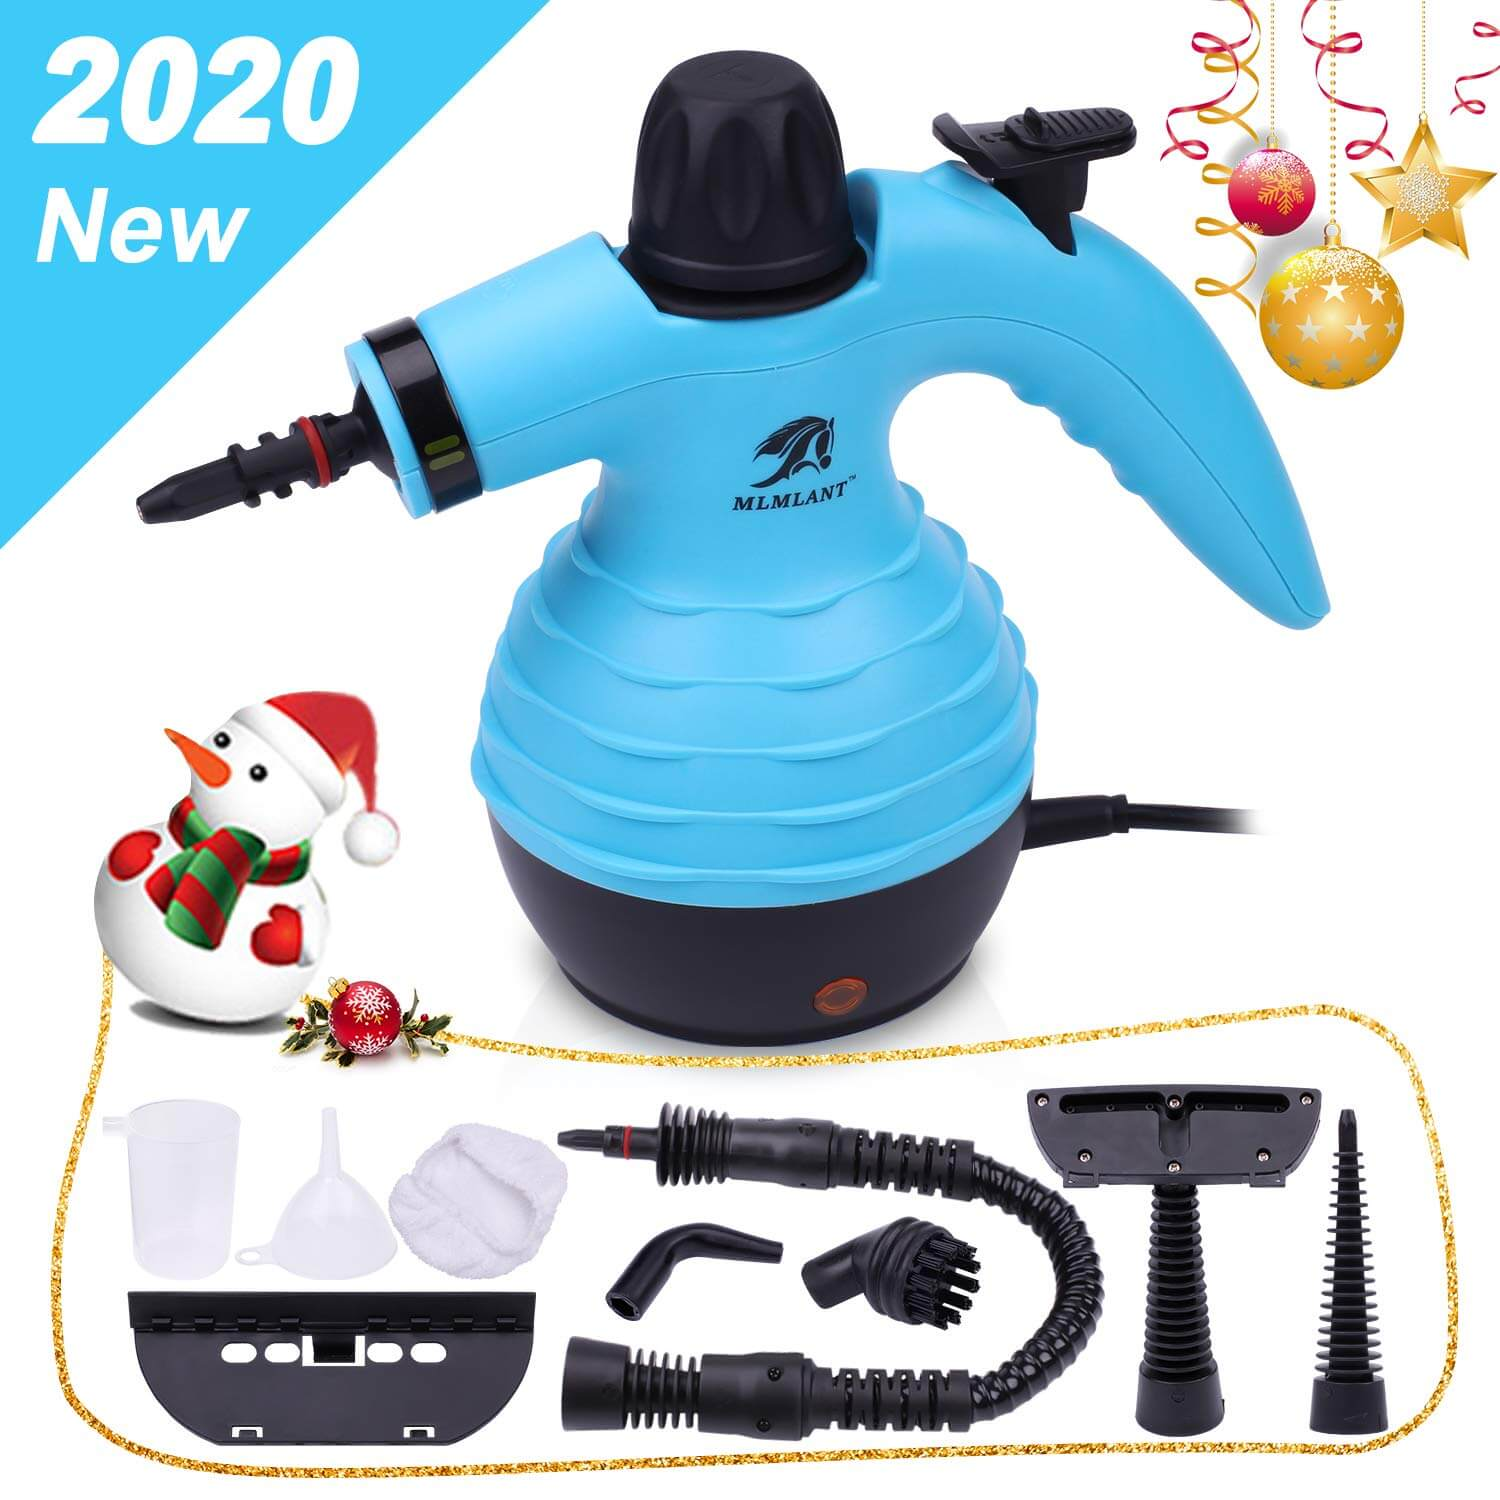 MLMLANT Pressurized Handheld Steam Cleaner